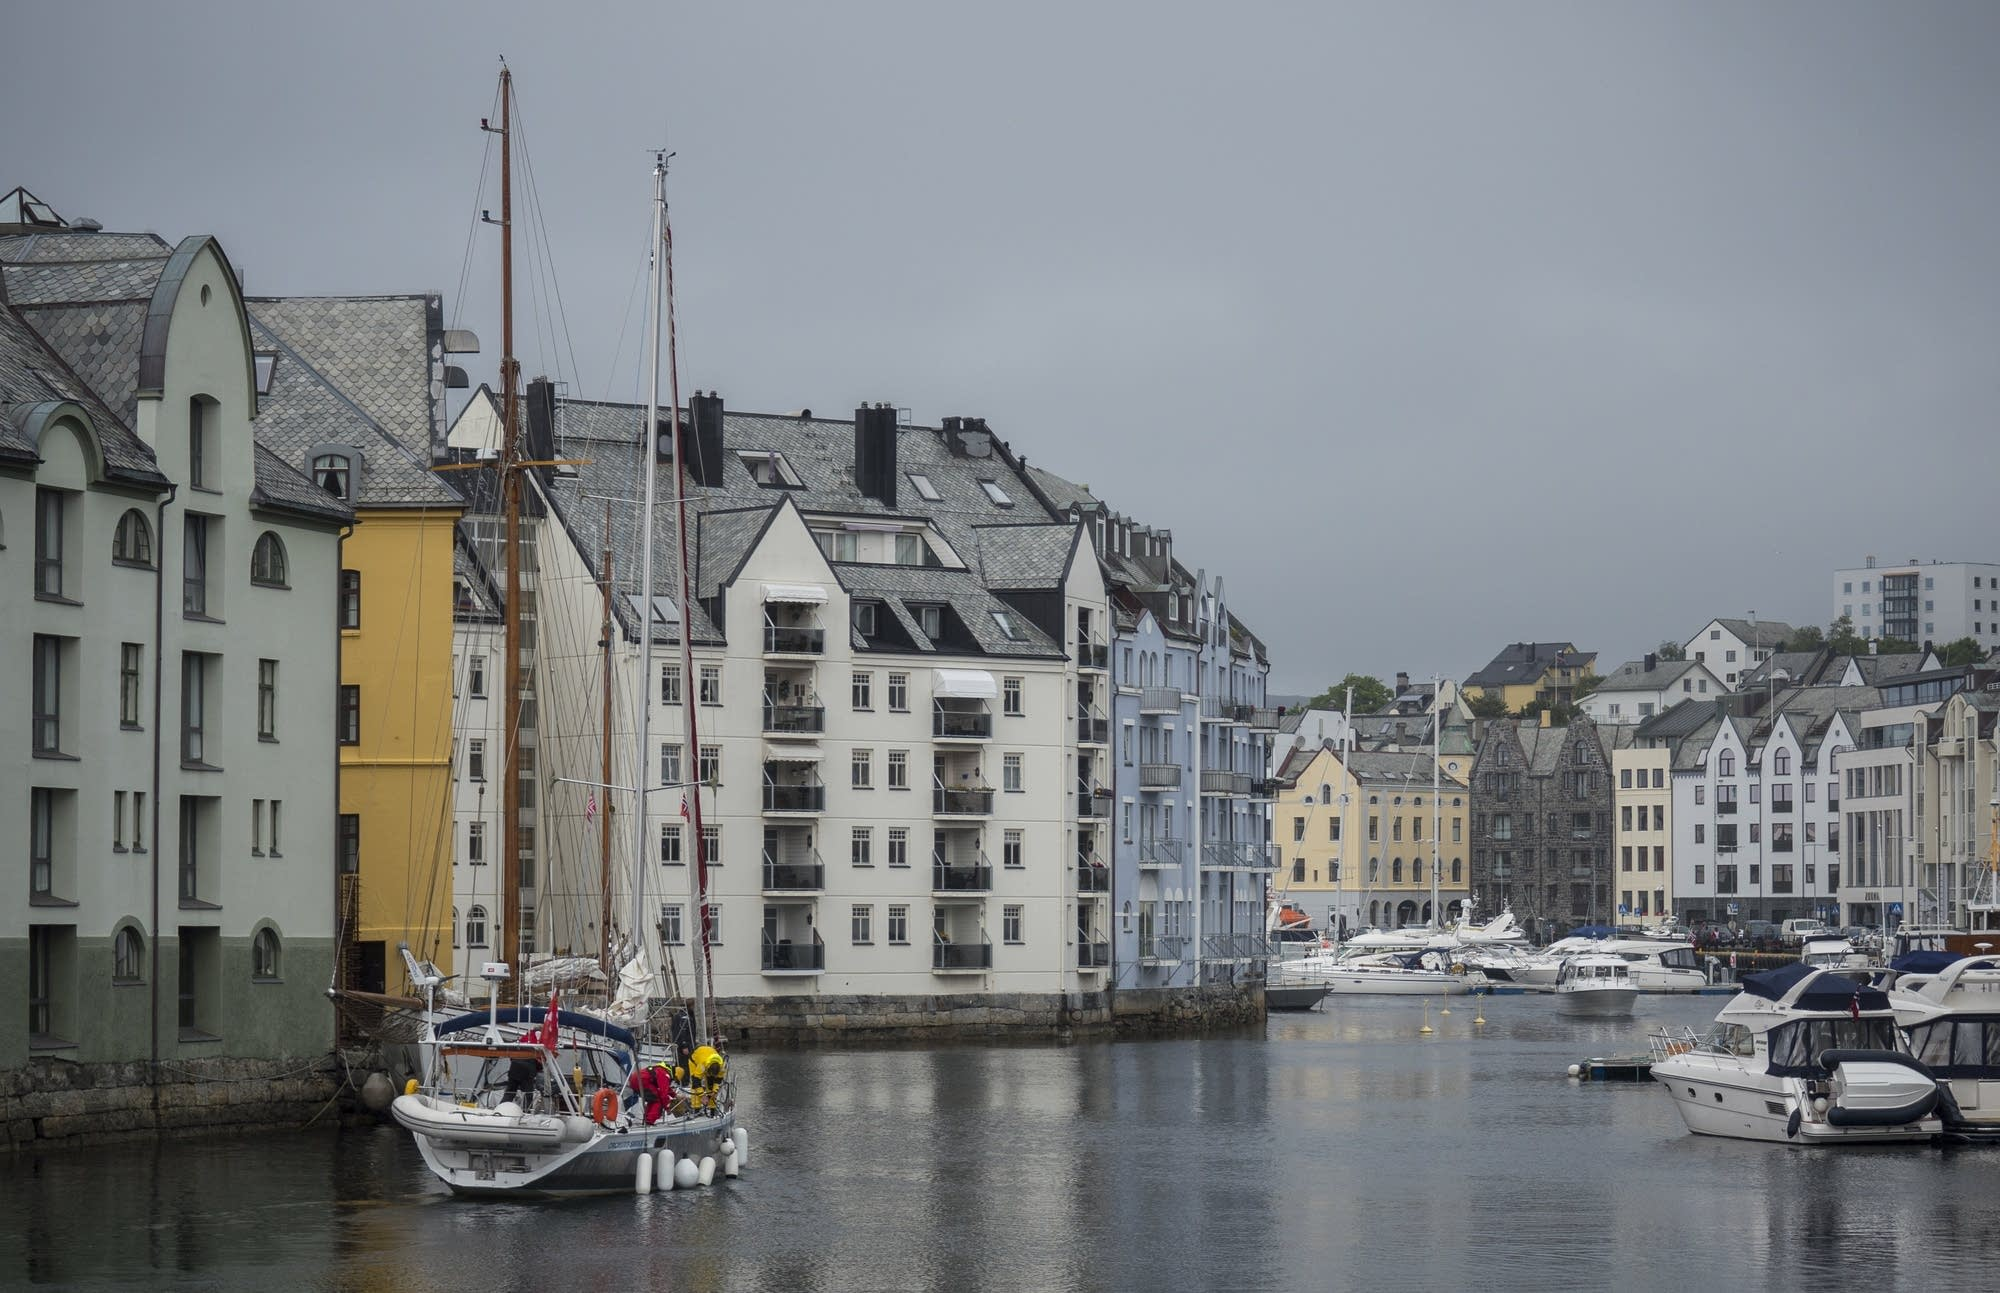 Alesund - 19 - boat and houses